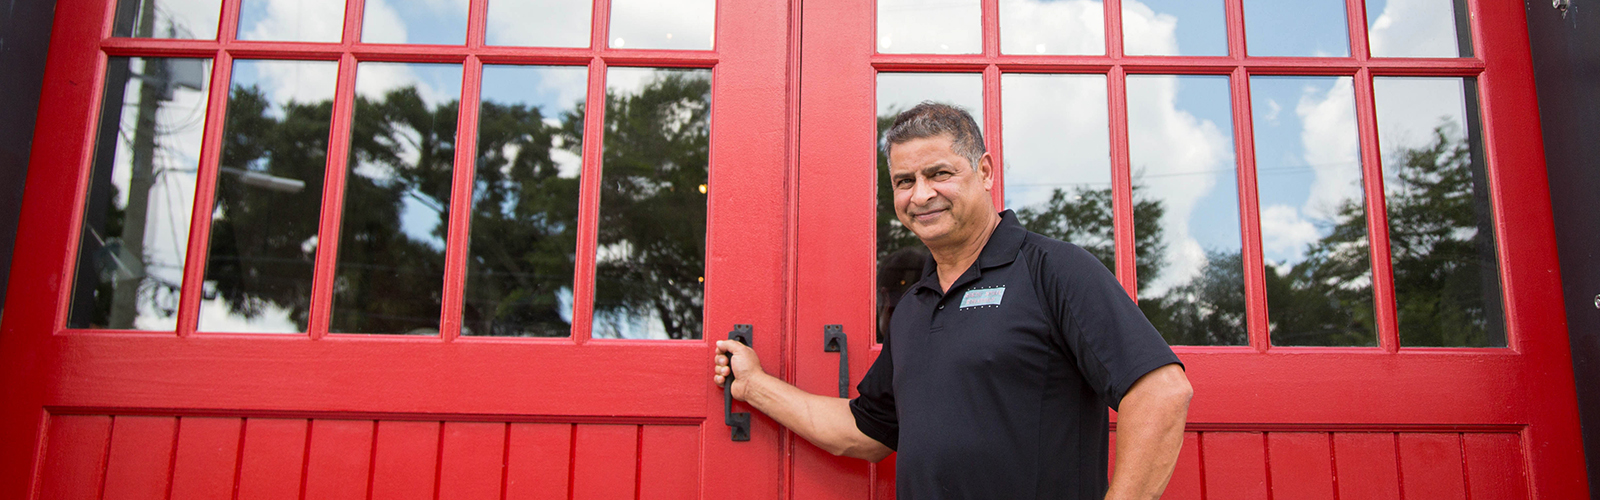 Dominique Martinez at his event space Red Door No. 5 in Tampa Heights.